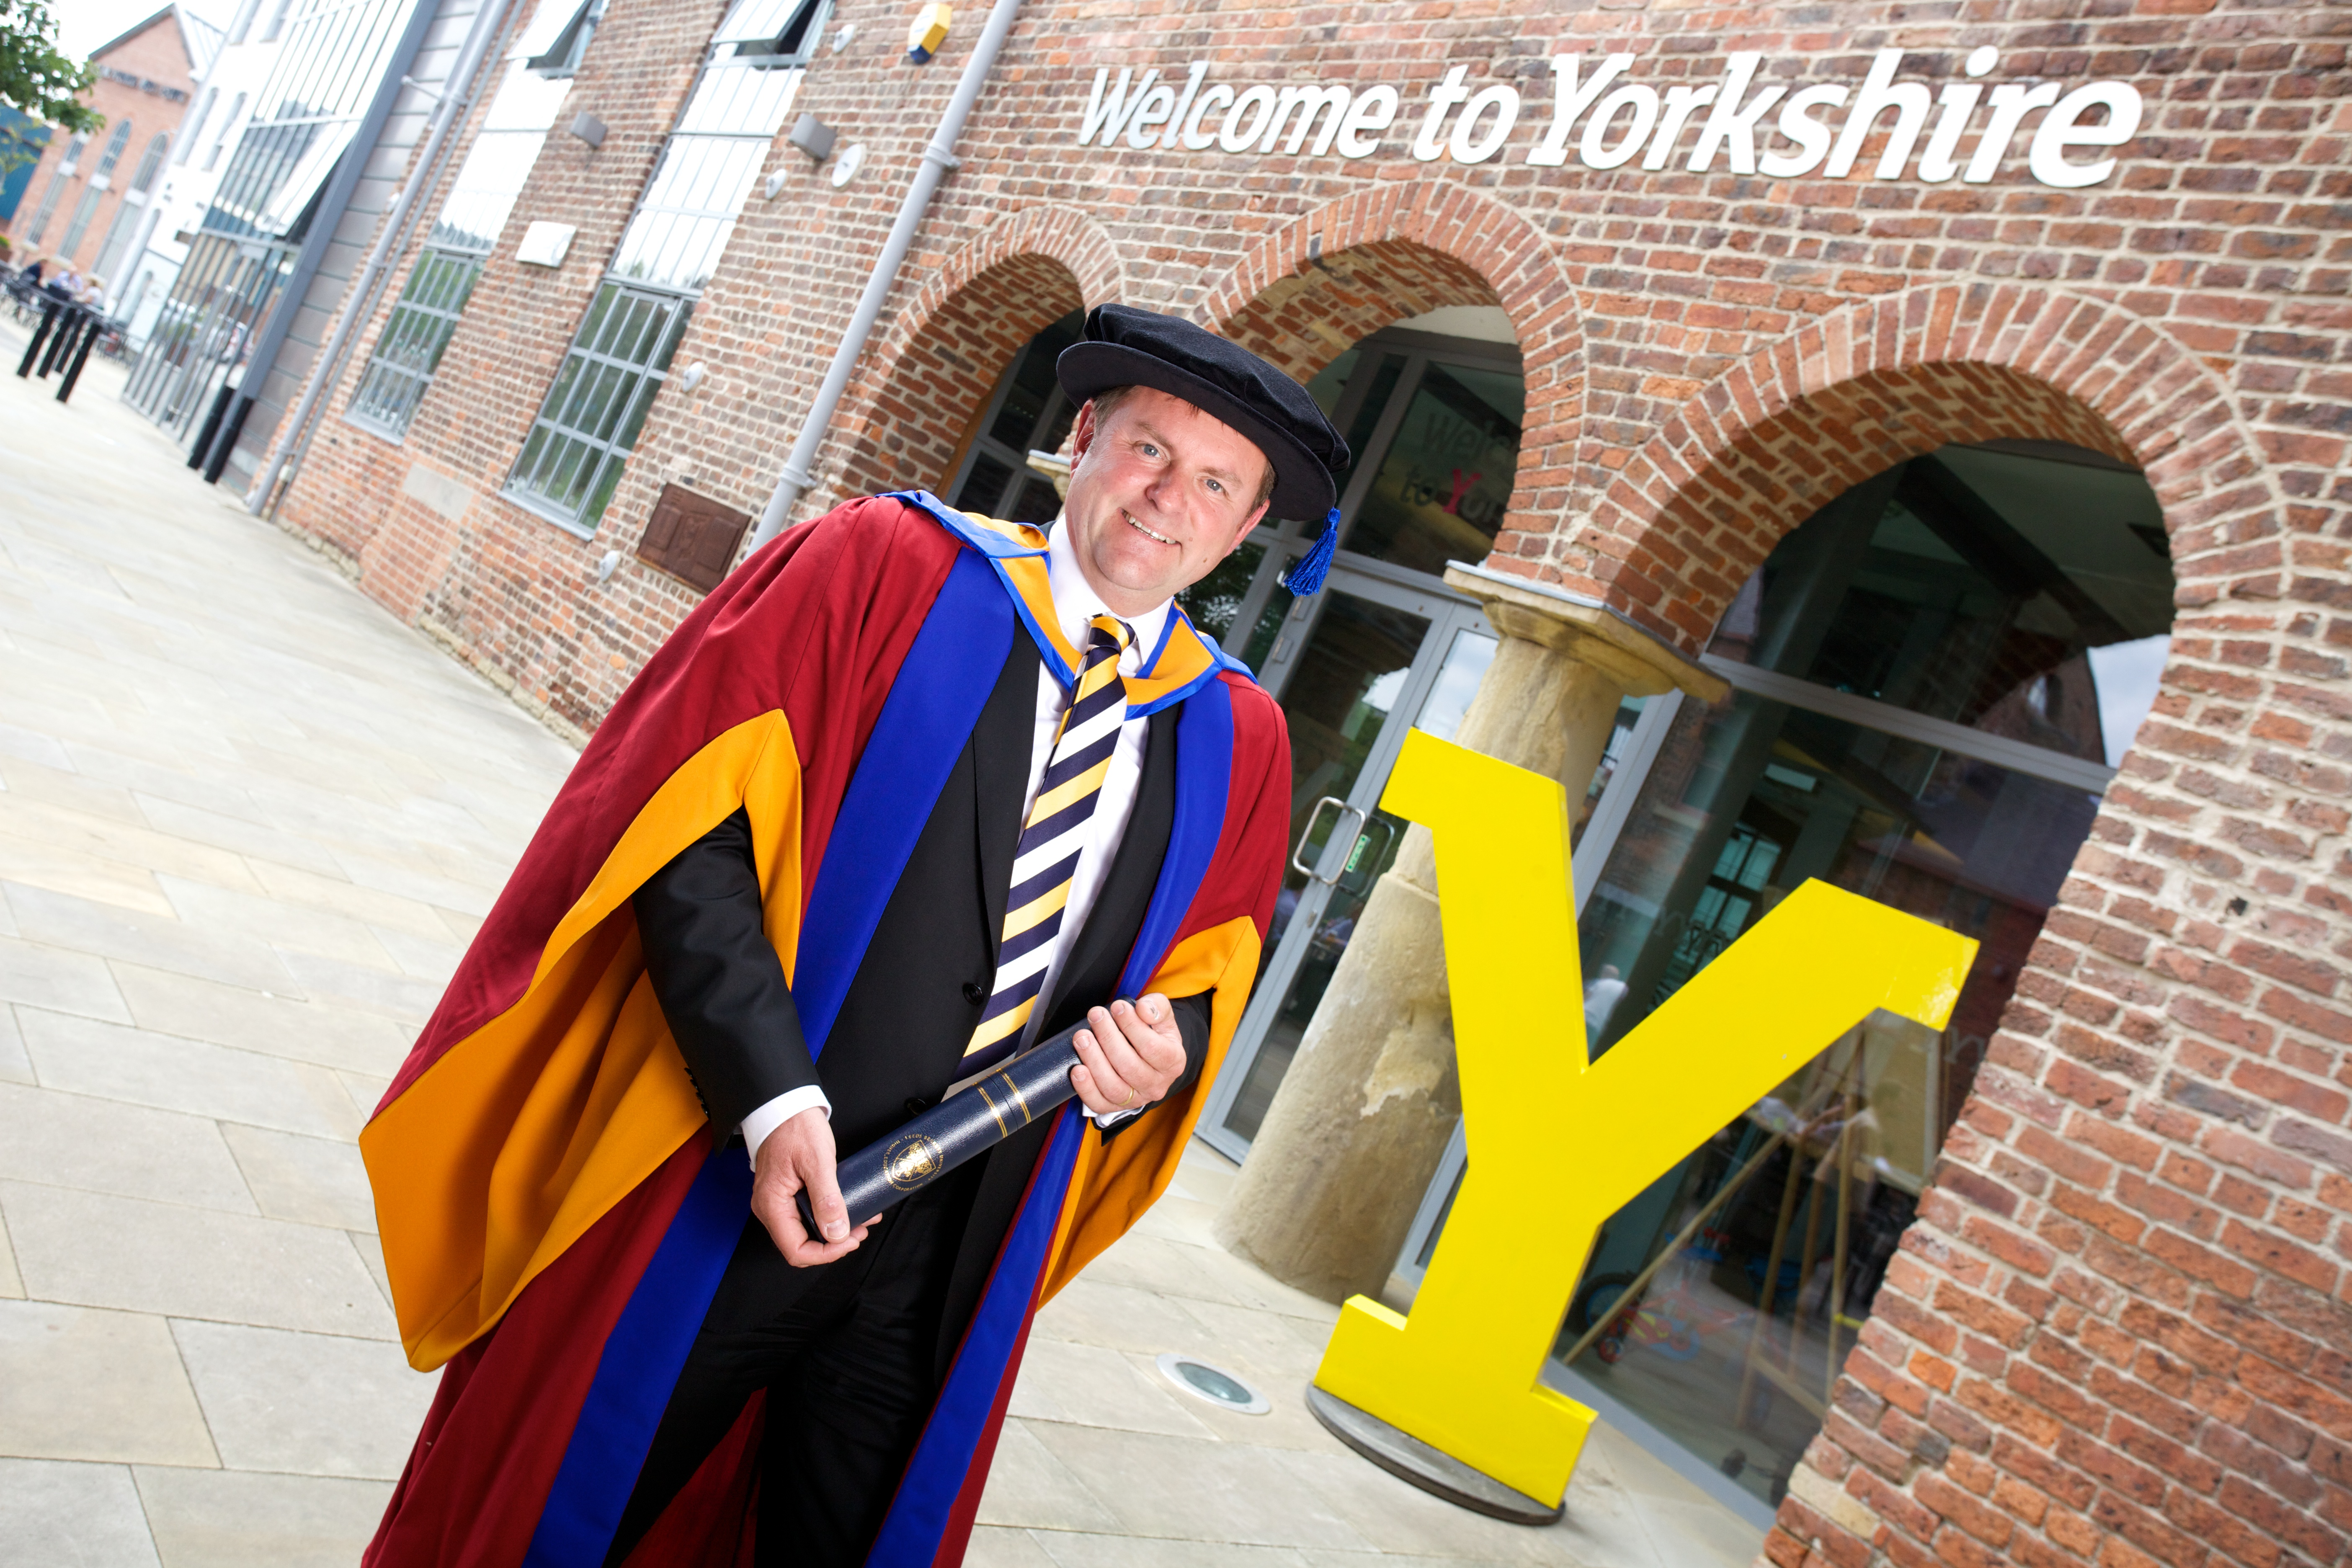 Welcome to Yorkshire chief awarded honorary degree